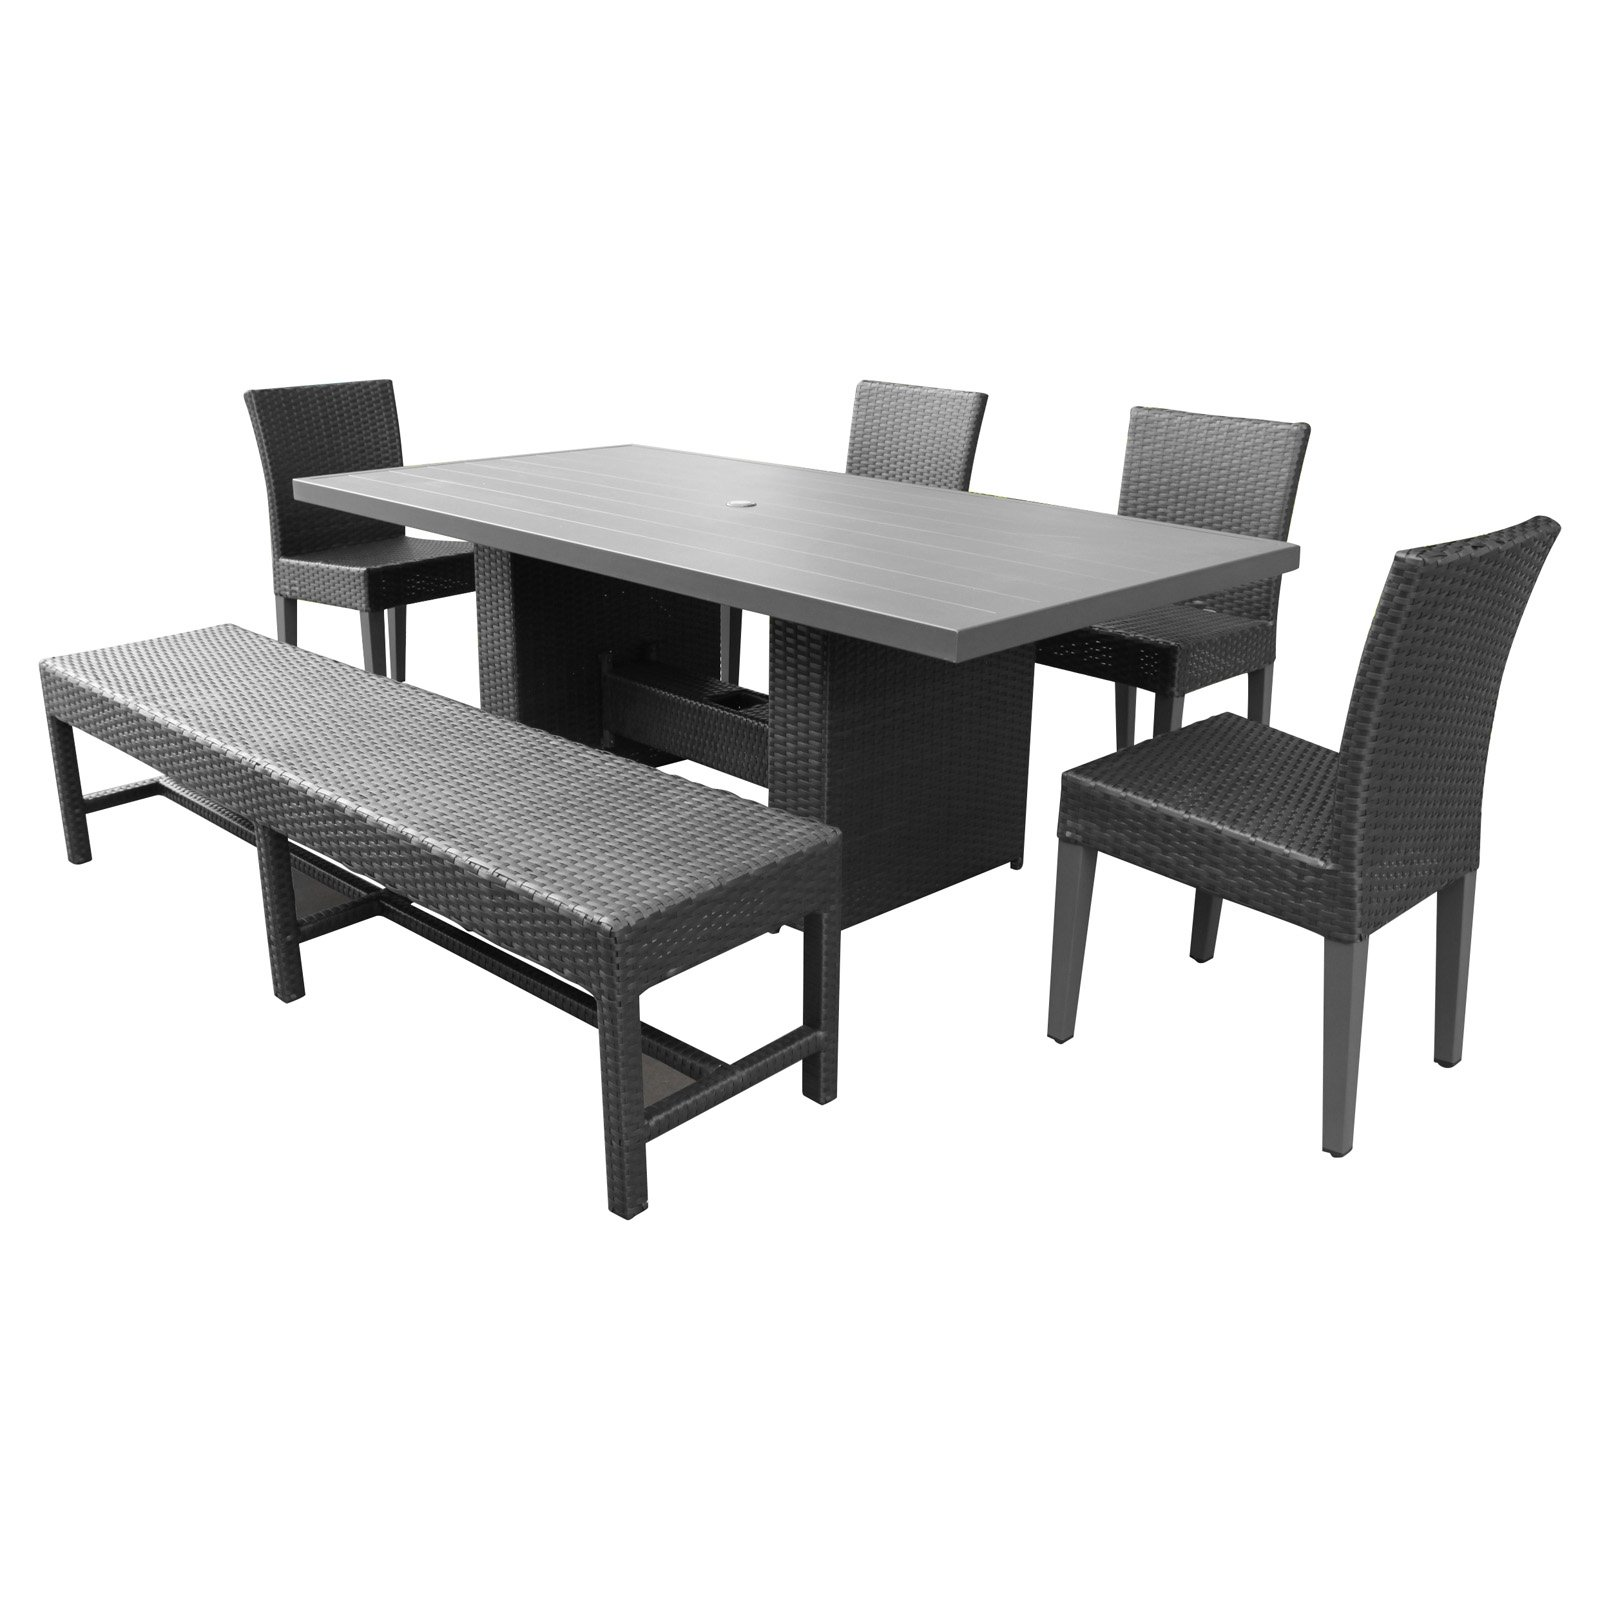 TK Classics Belle Wicker 6 Piece Patio Dining Set